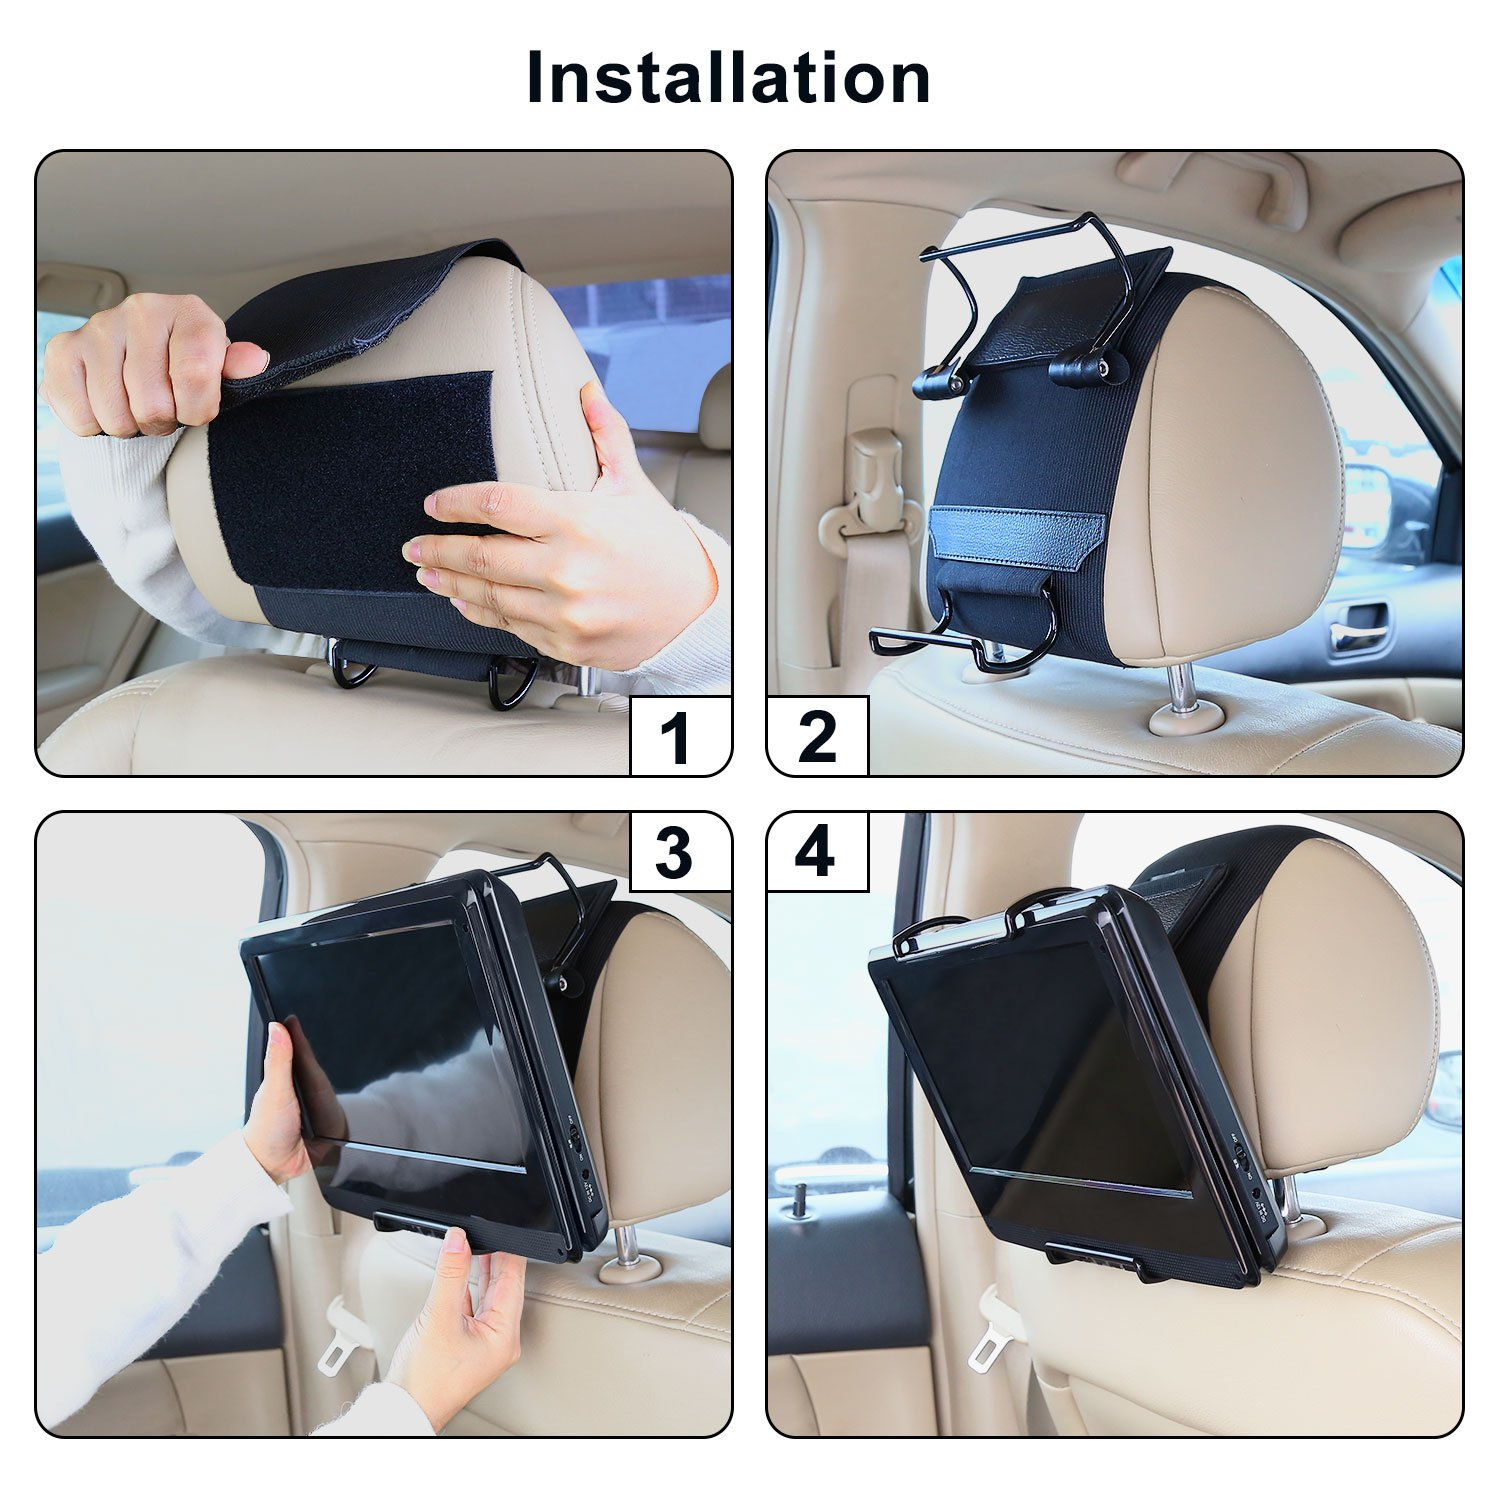 CUTRIP Car Headrest Mount Holder for CUTRIP 10.1 inch Portable Blu-ray Player and Fit for 10.1-12.5 inch Swivel Screen Portable DVD Players (DVD Player Thickness Requires about 35-42MM) by CUtrip (Image #5)